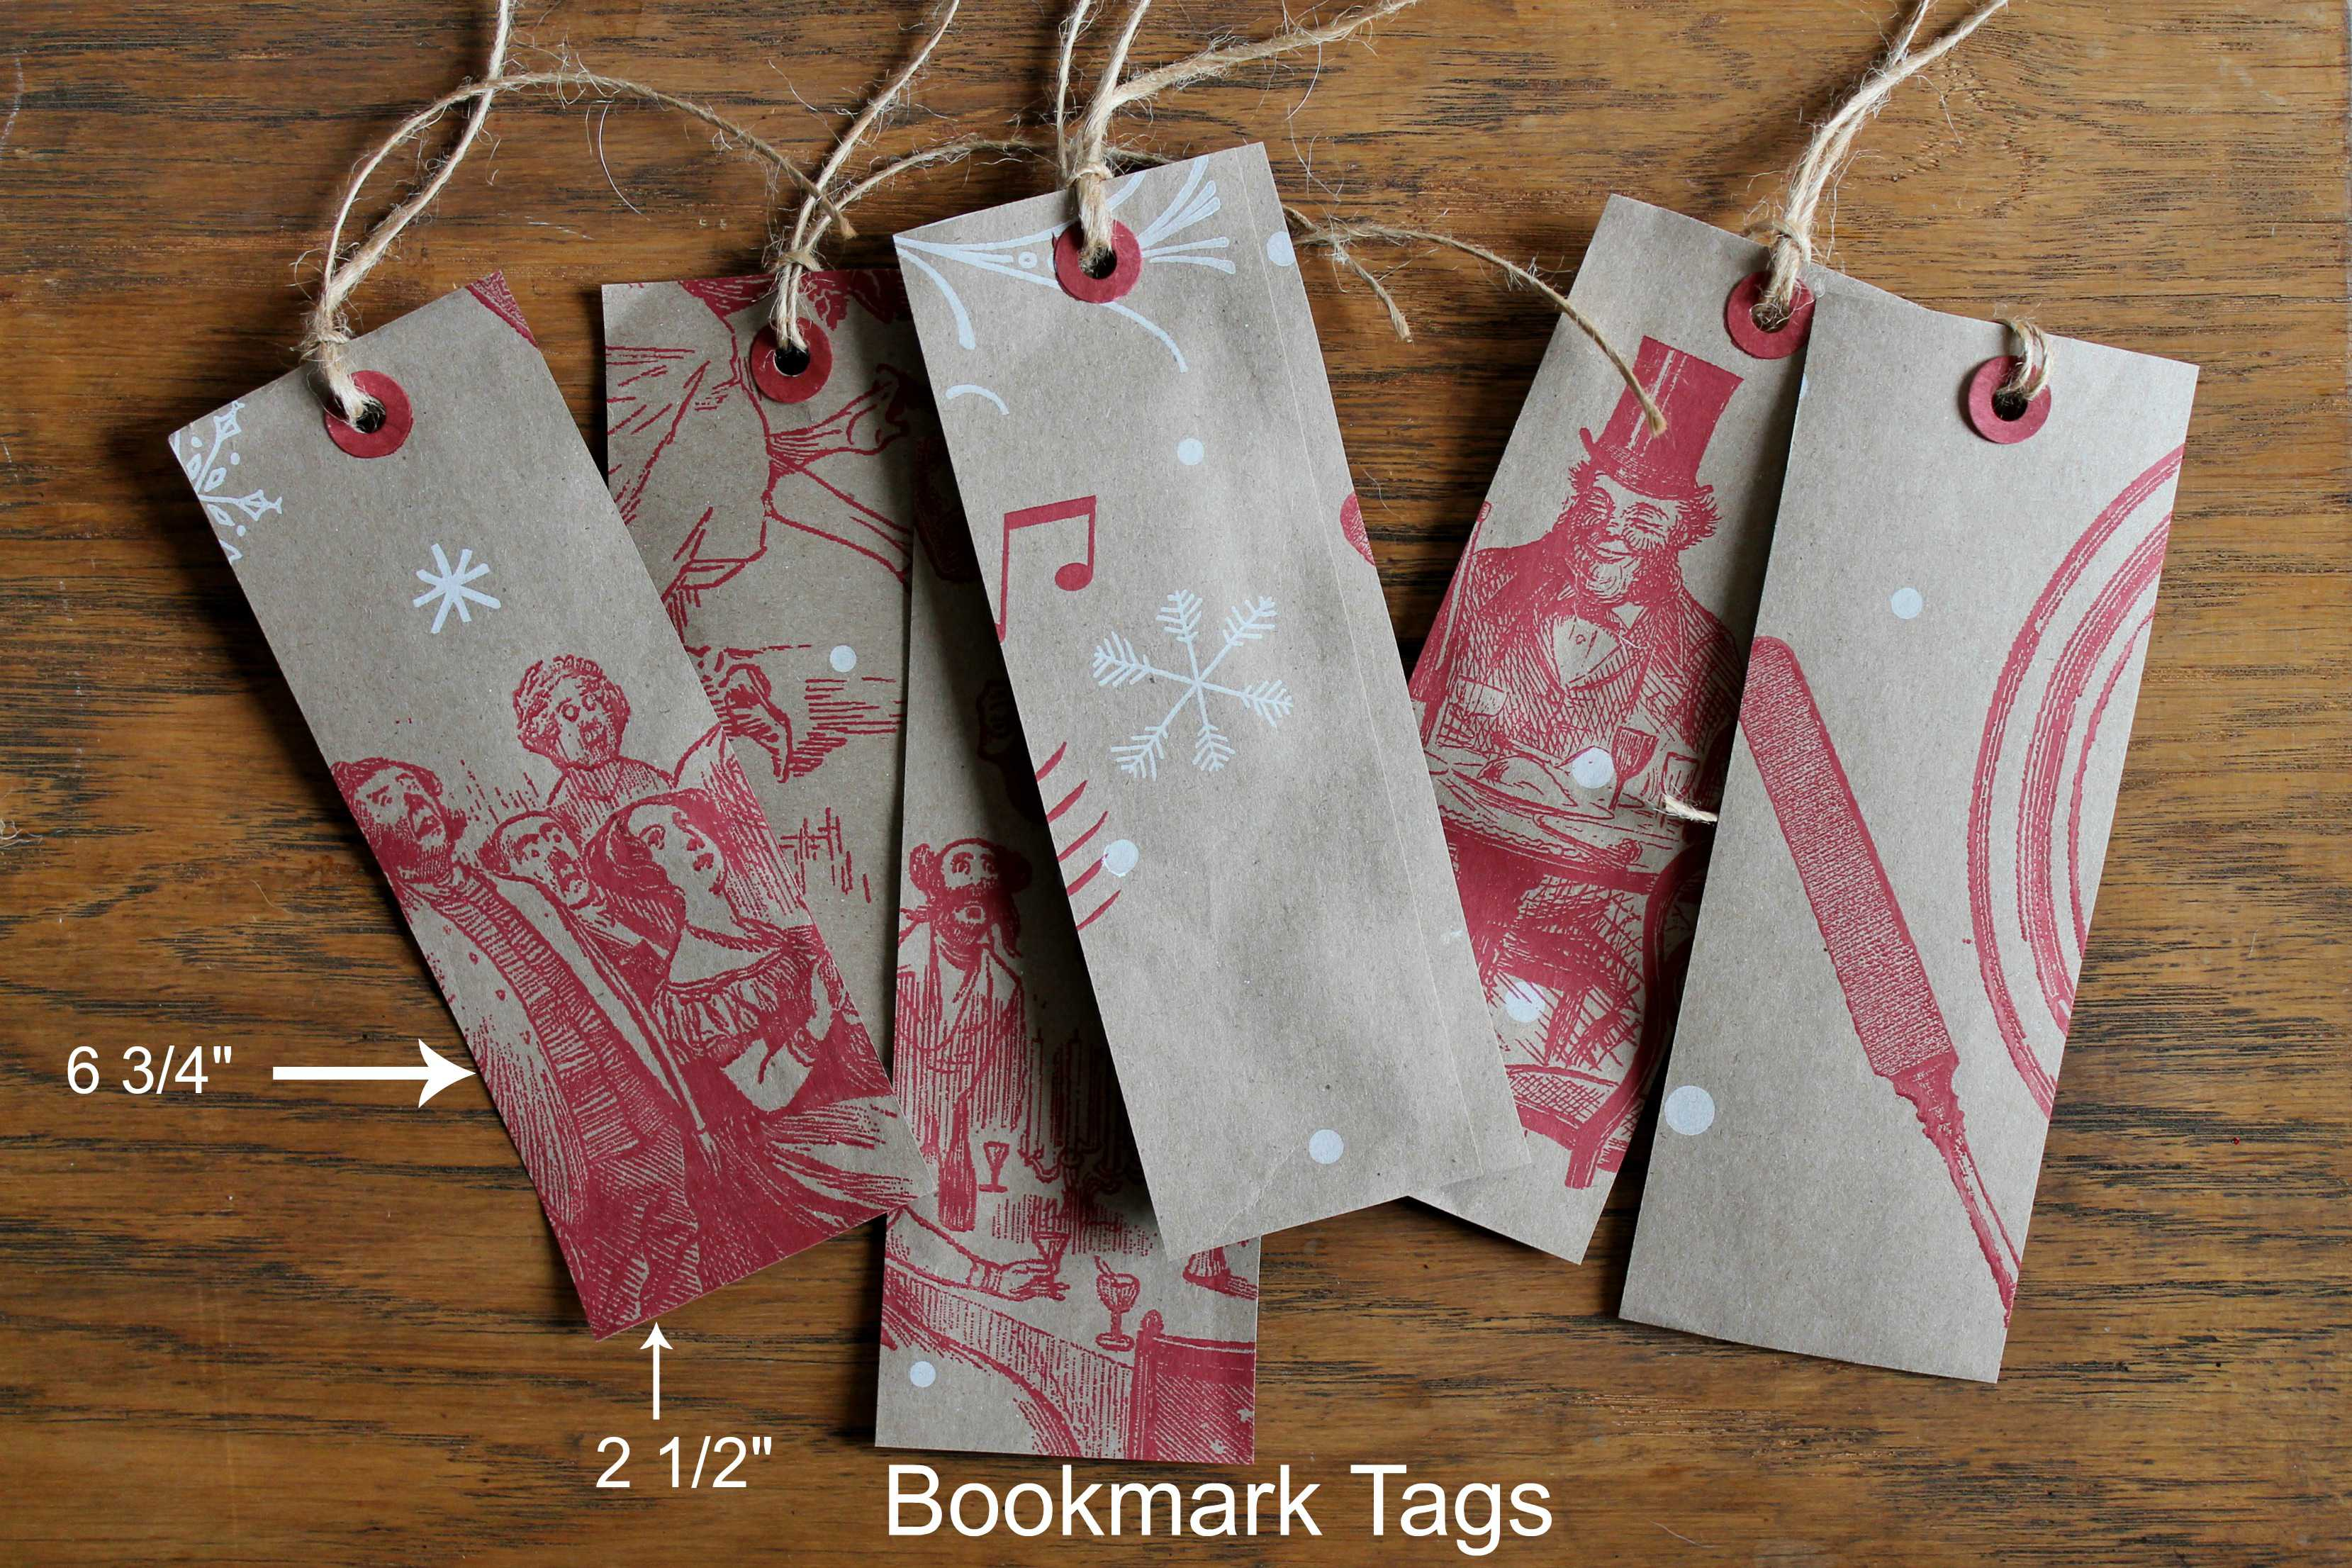 Bookmark size tags from Trader Joe Shopping Bags